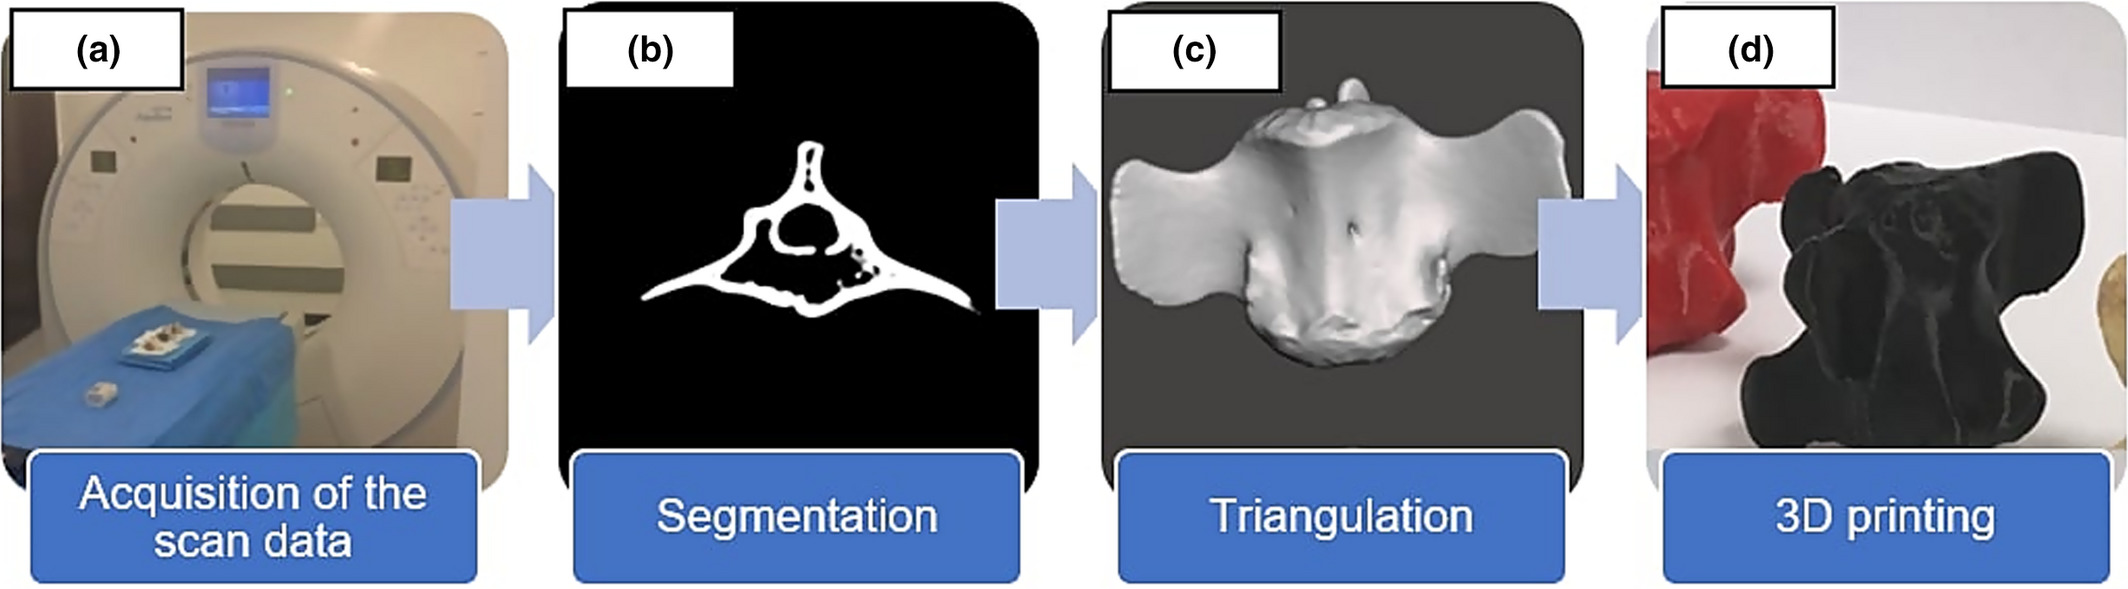 The scan-to-print 3D printing pipeline that the researchers used to produce the 3D models. Image via the Journal of Medical Radiation Sciences.